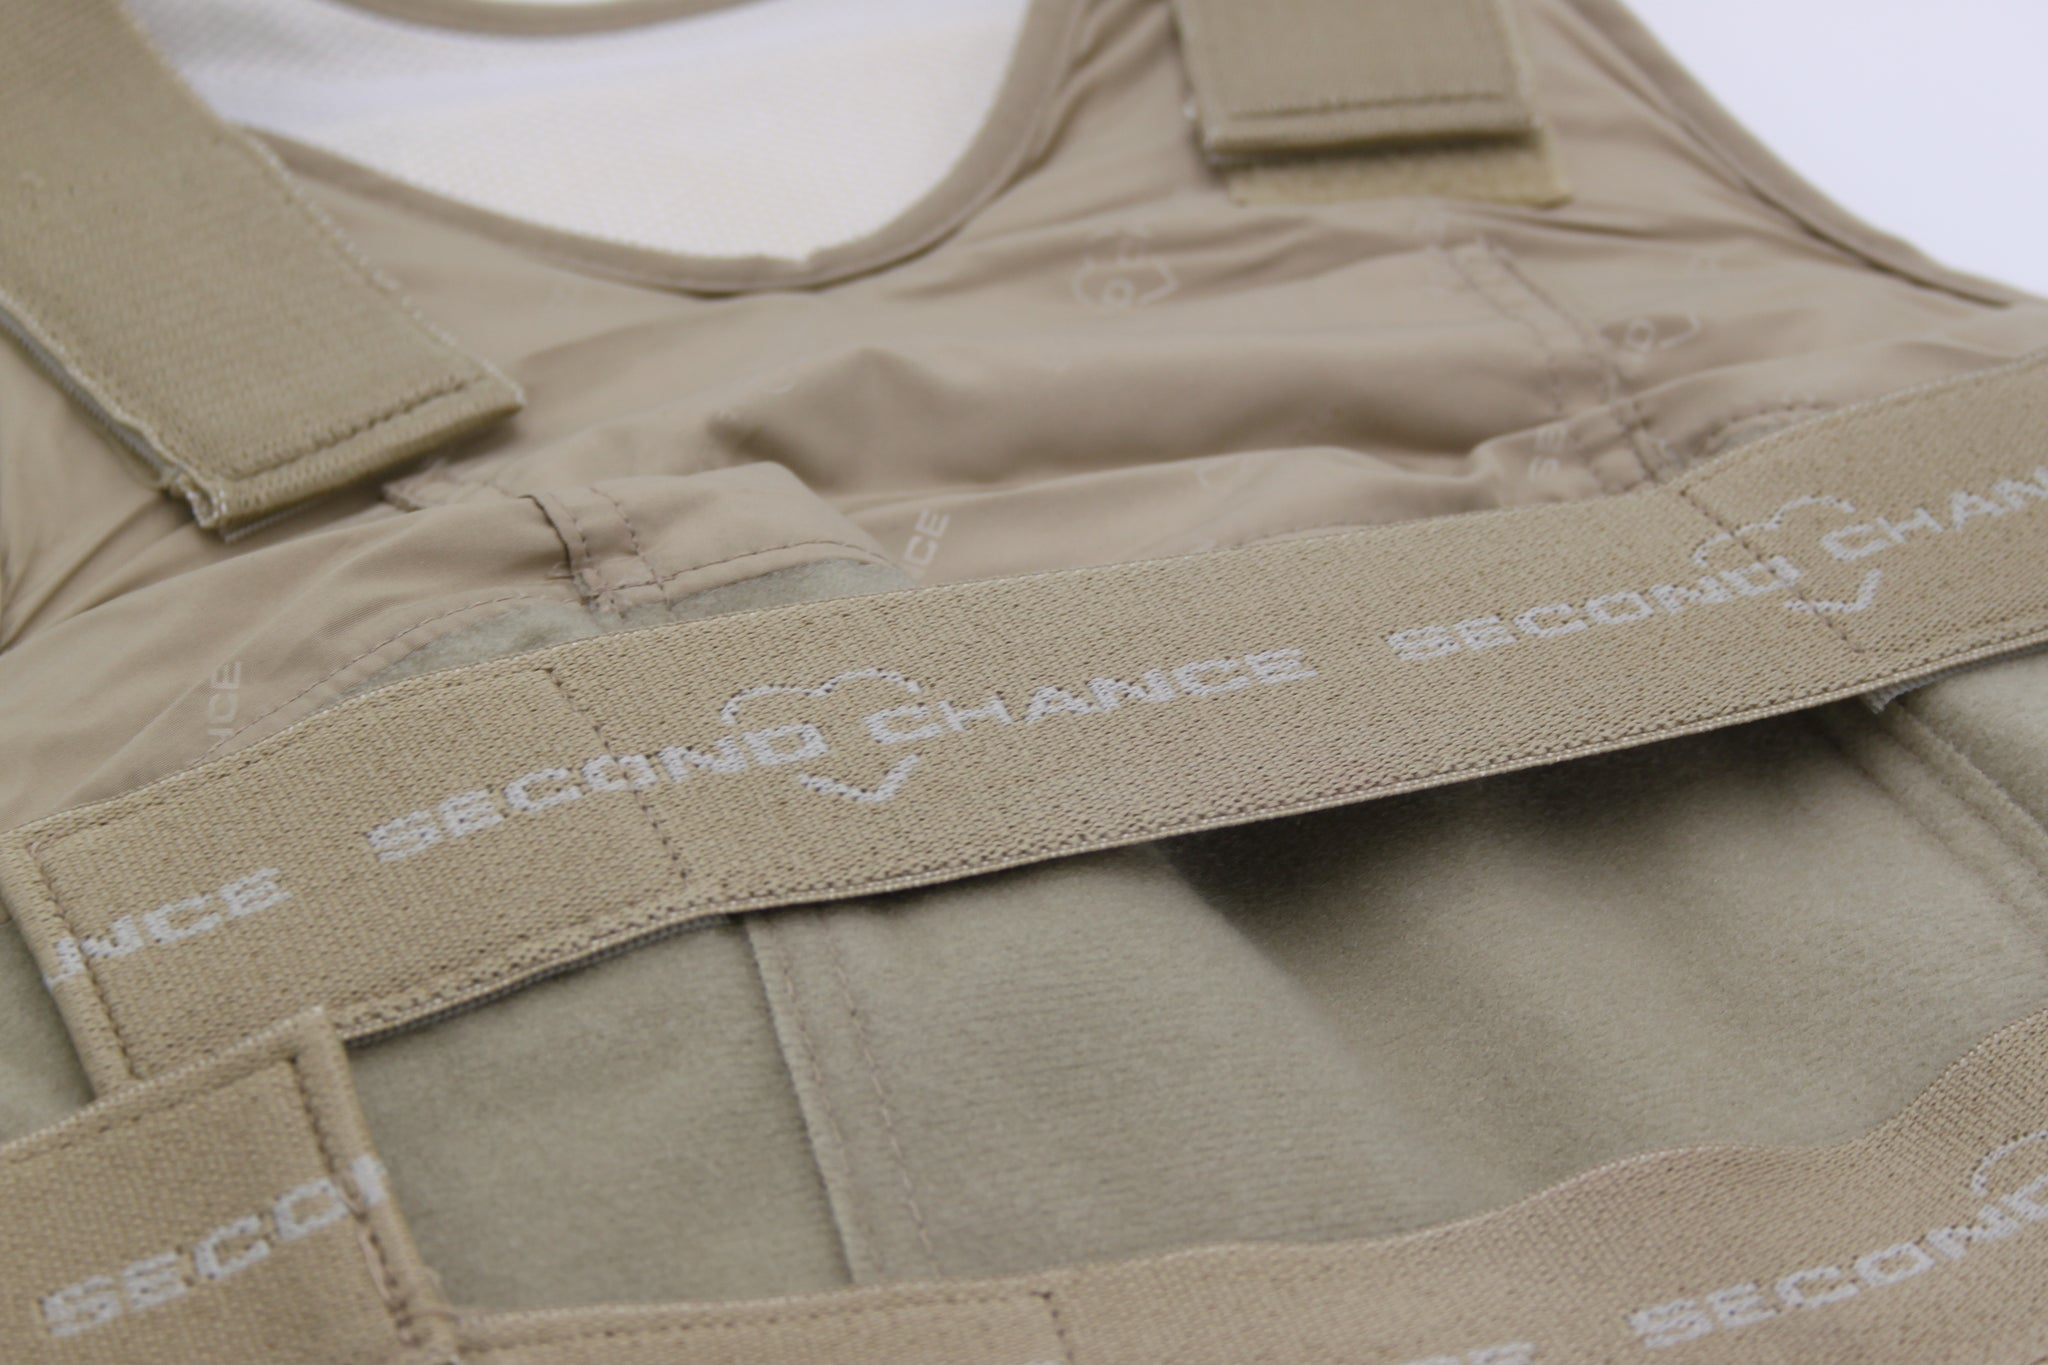 Survival General, Military surplus, Women's flak vest